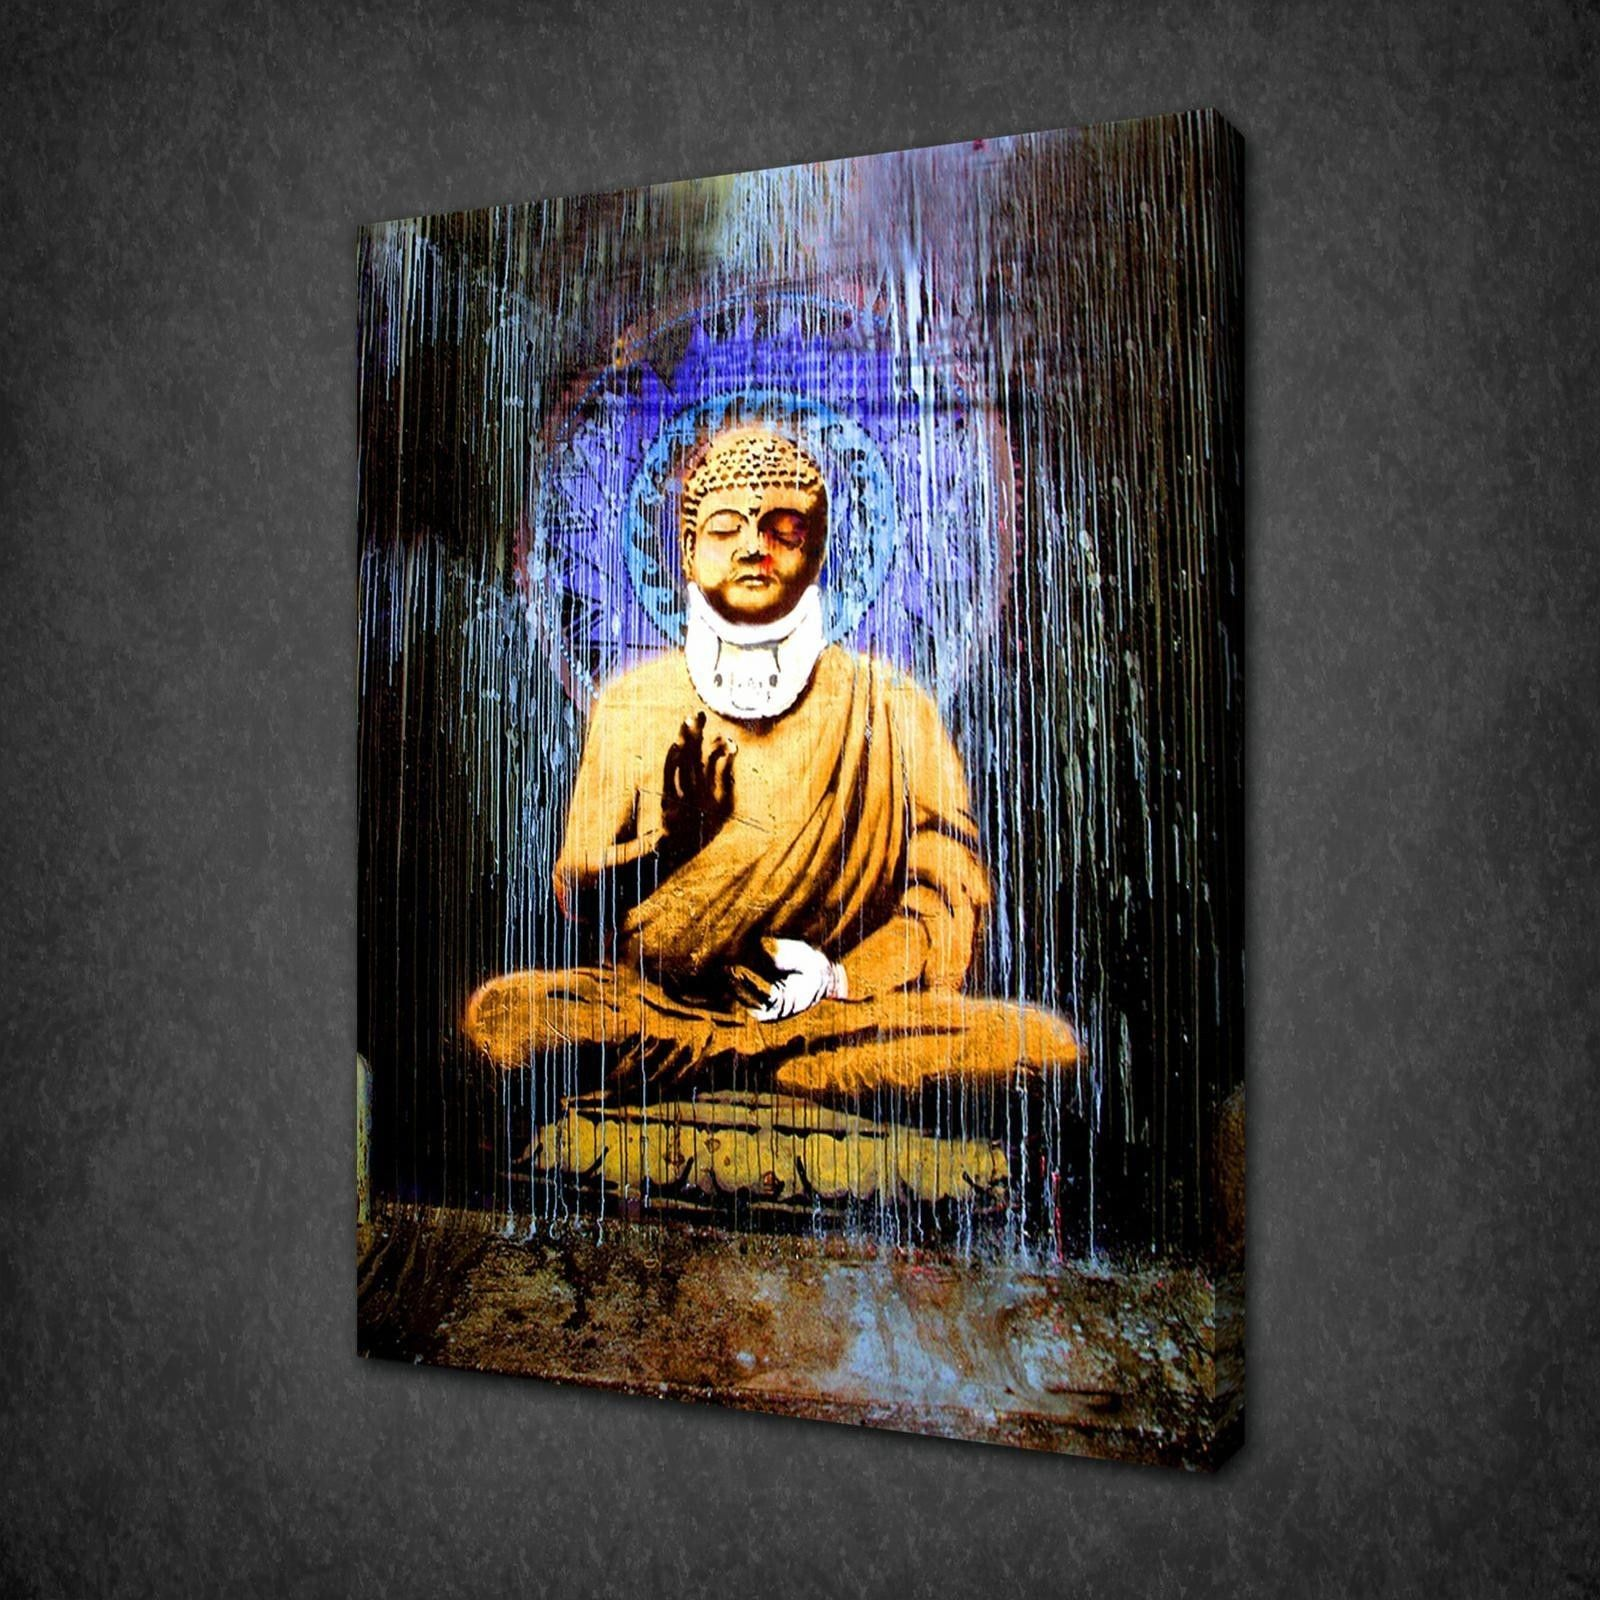 banksy buddha canvas wall art pictures prints free uk p p variety of sizes canvas print art. Black Bedroom Furniture Sets. Home Design Ideas